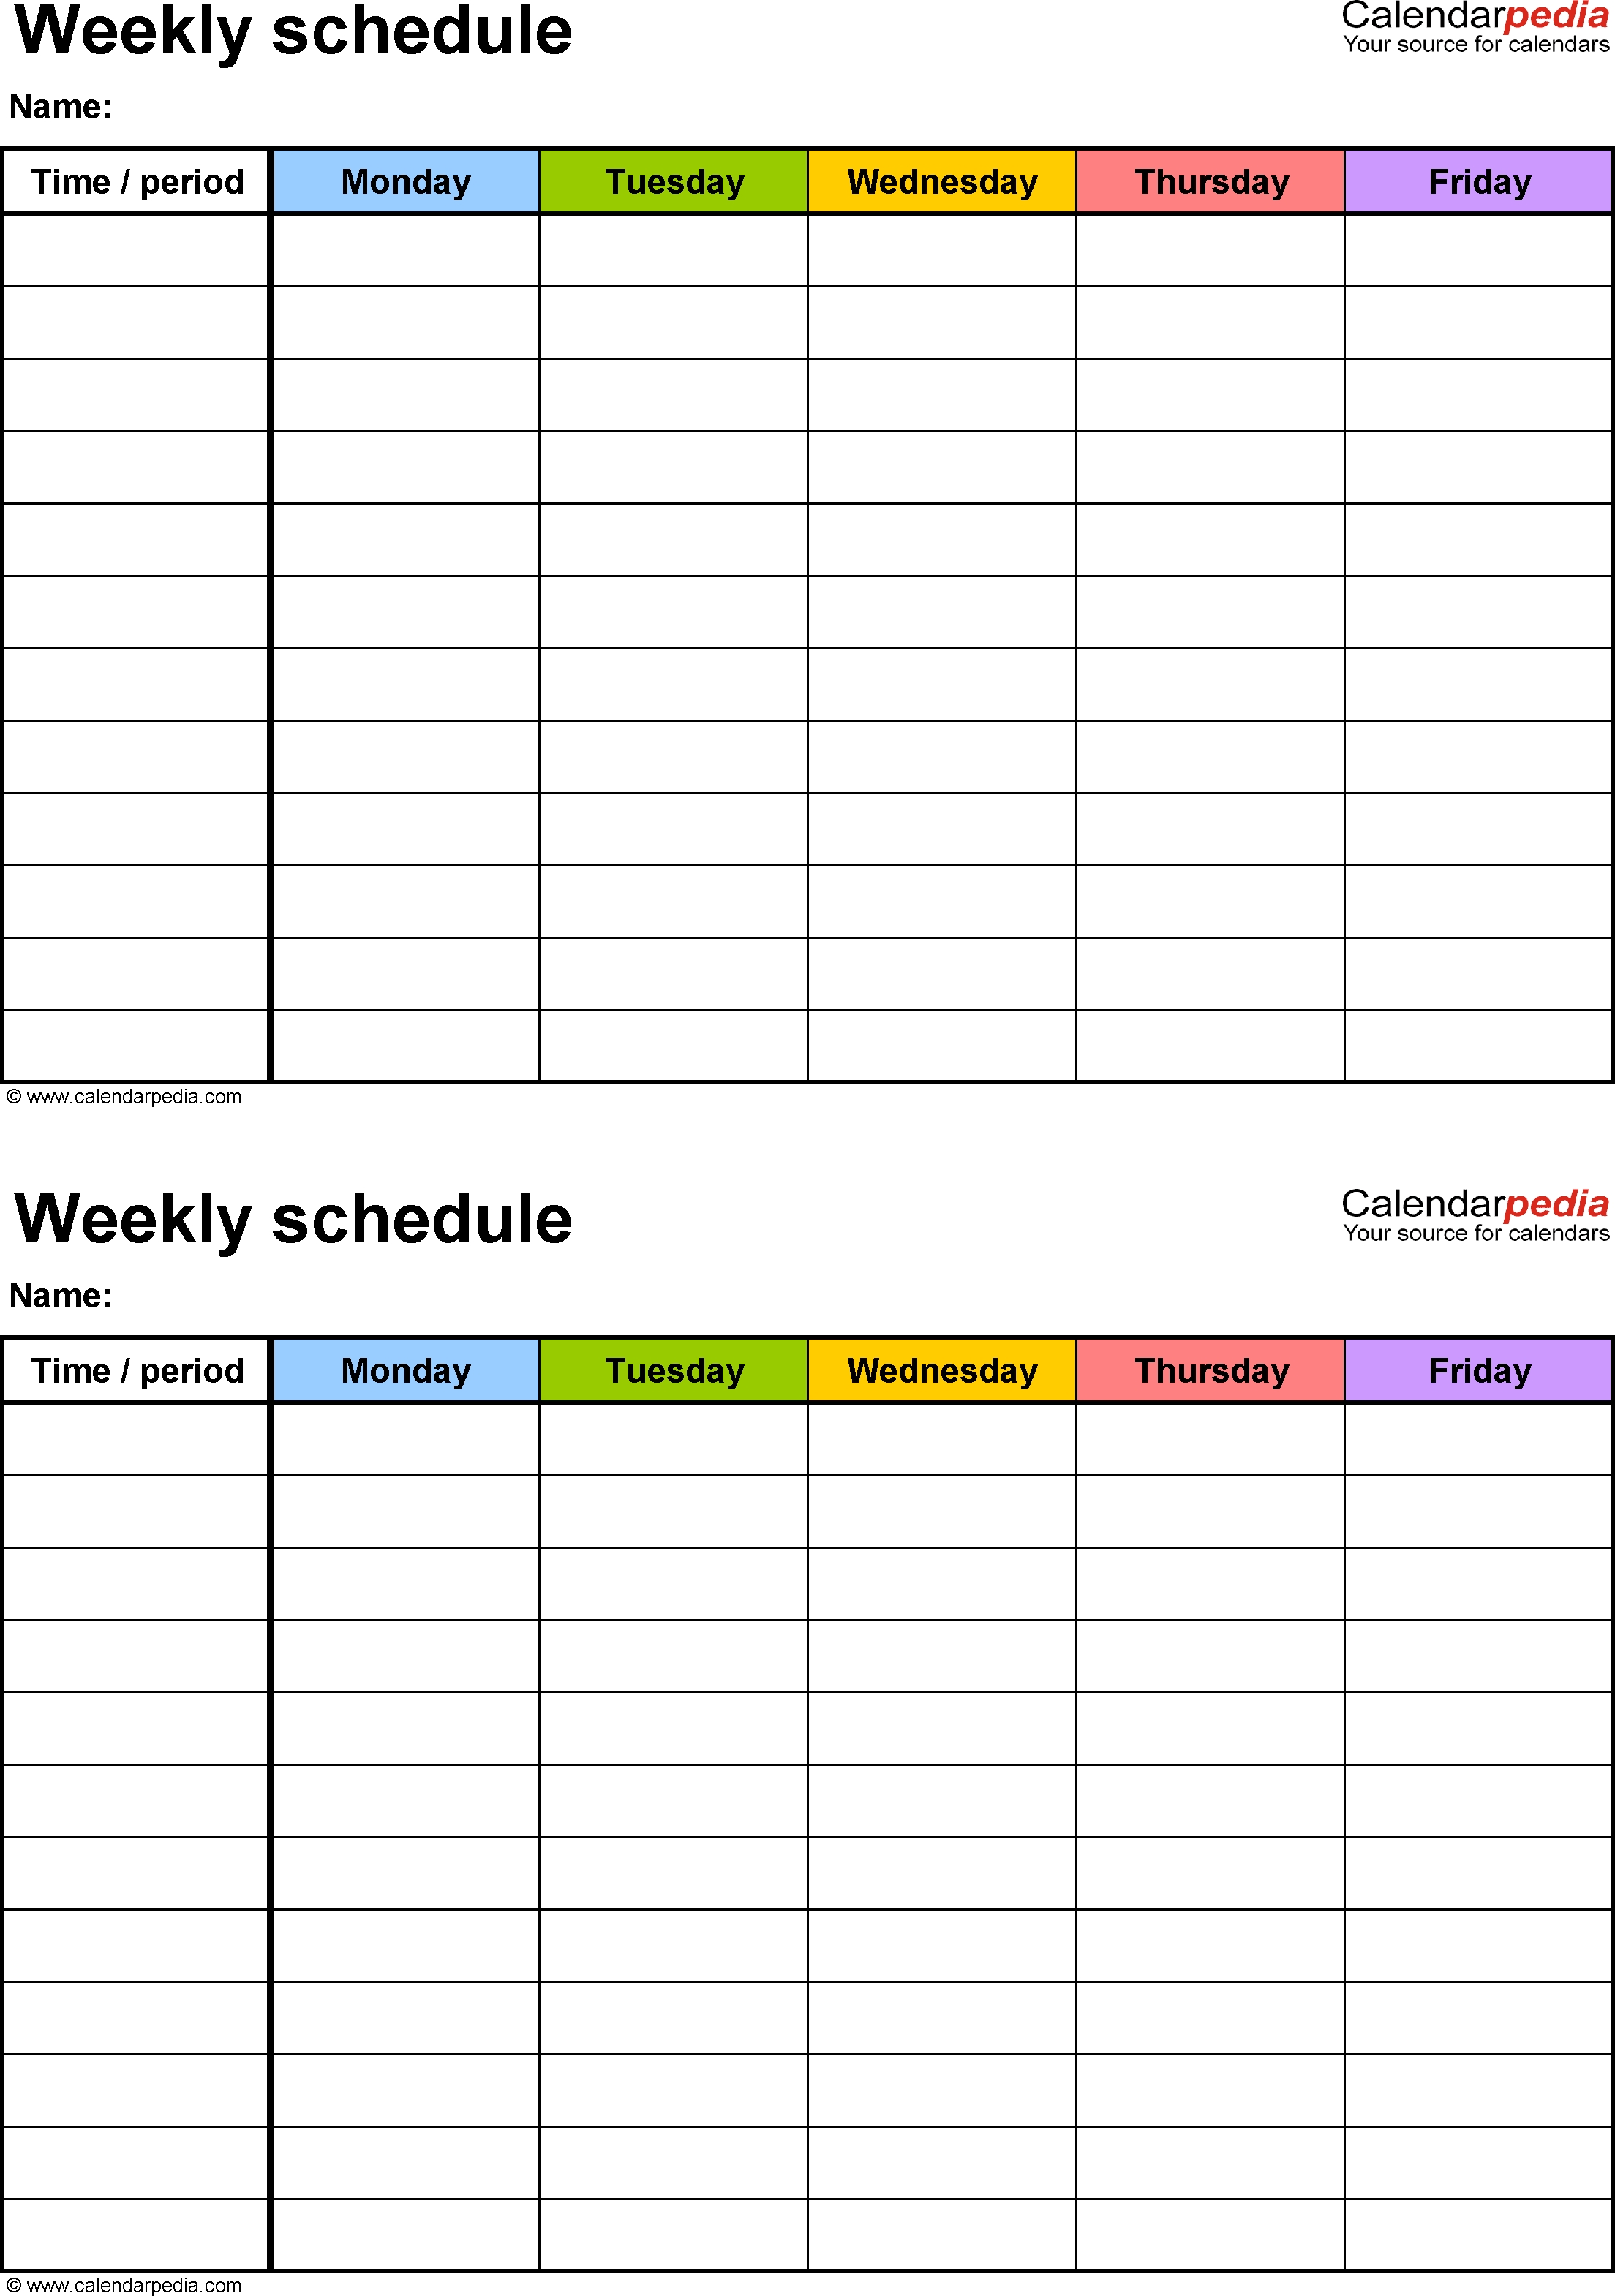 Weekly Schedule Template For Excel Version 3: 2 Schedules On One with regard to 5 Day Week Blank Calendar Printable